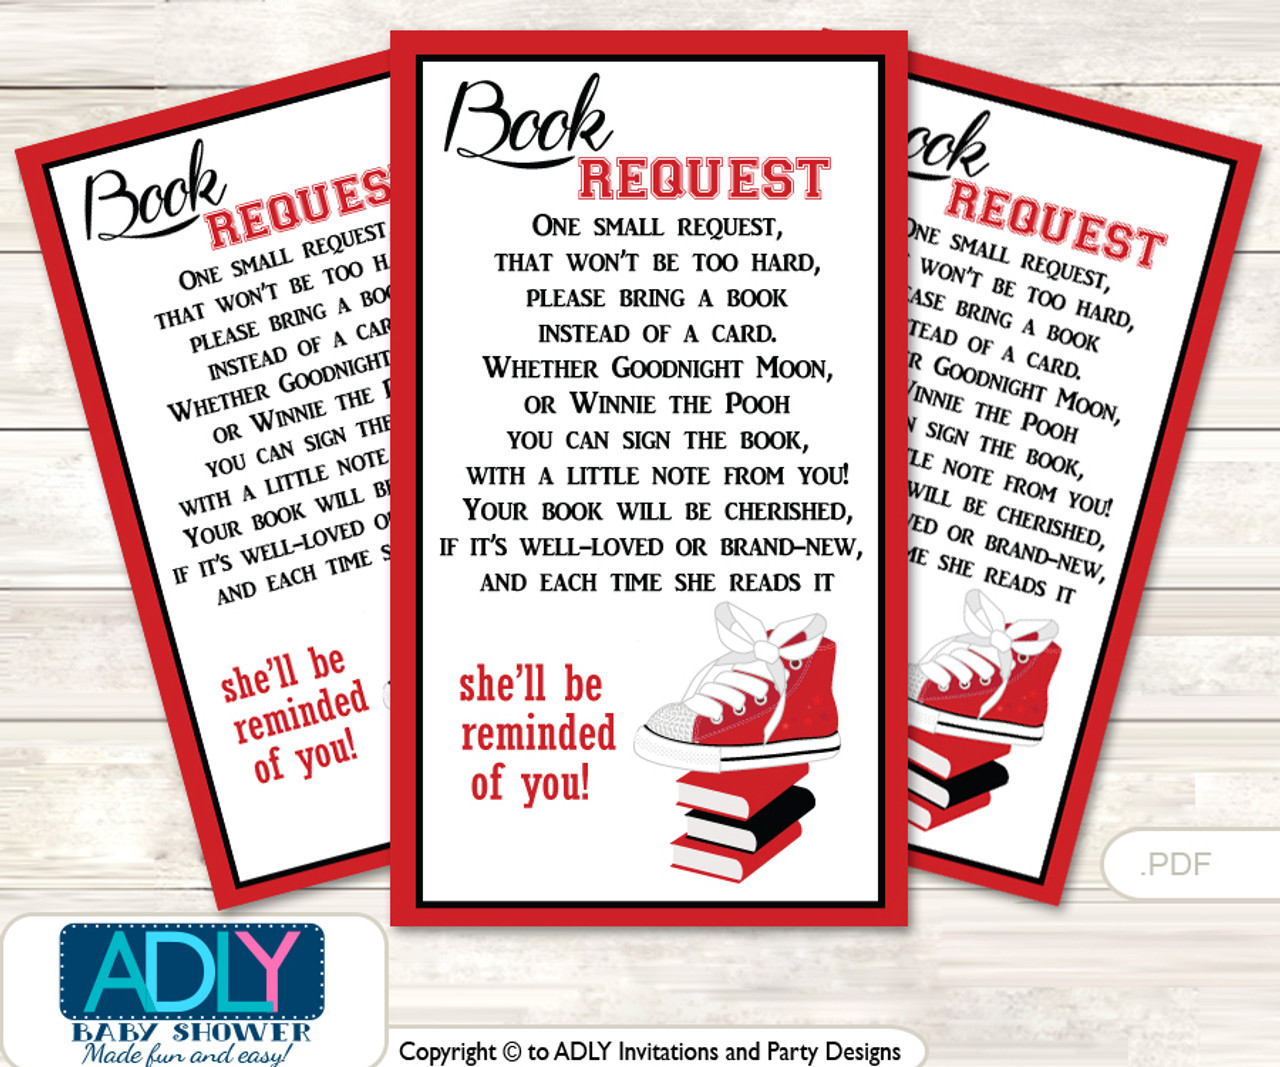 image relating to Bring a Book Instead of a Card Printable referred to as Talk to a E book As a substitute of a Card for Lady SneakersBaby Shower or Birthday, Printable Reserve Do it yourself Tickets, Video game, pink black